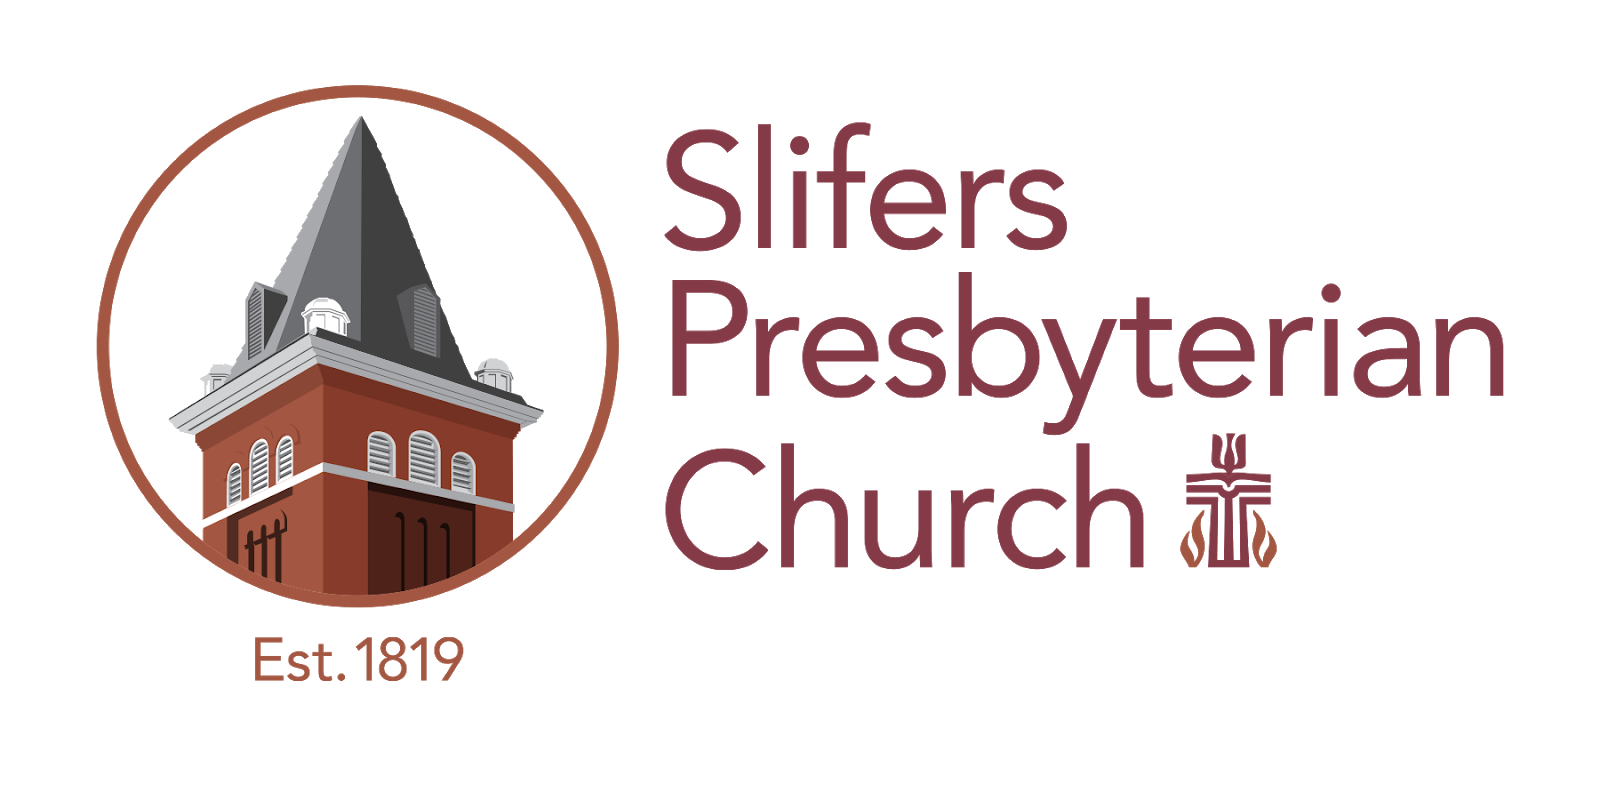 Slifers Presbyterian Church